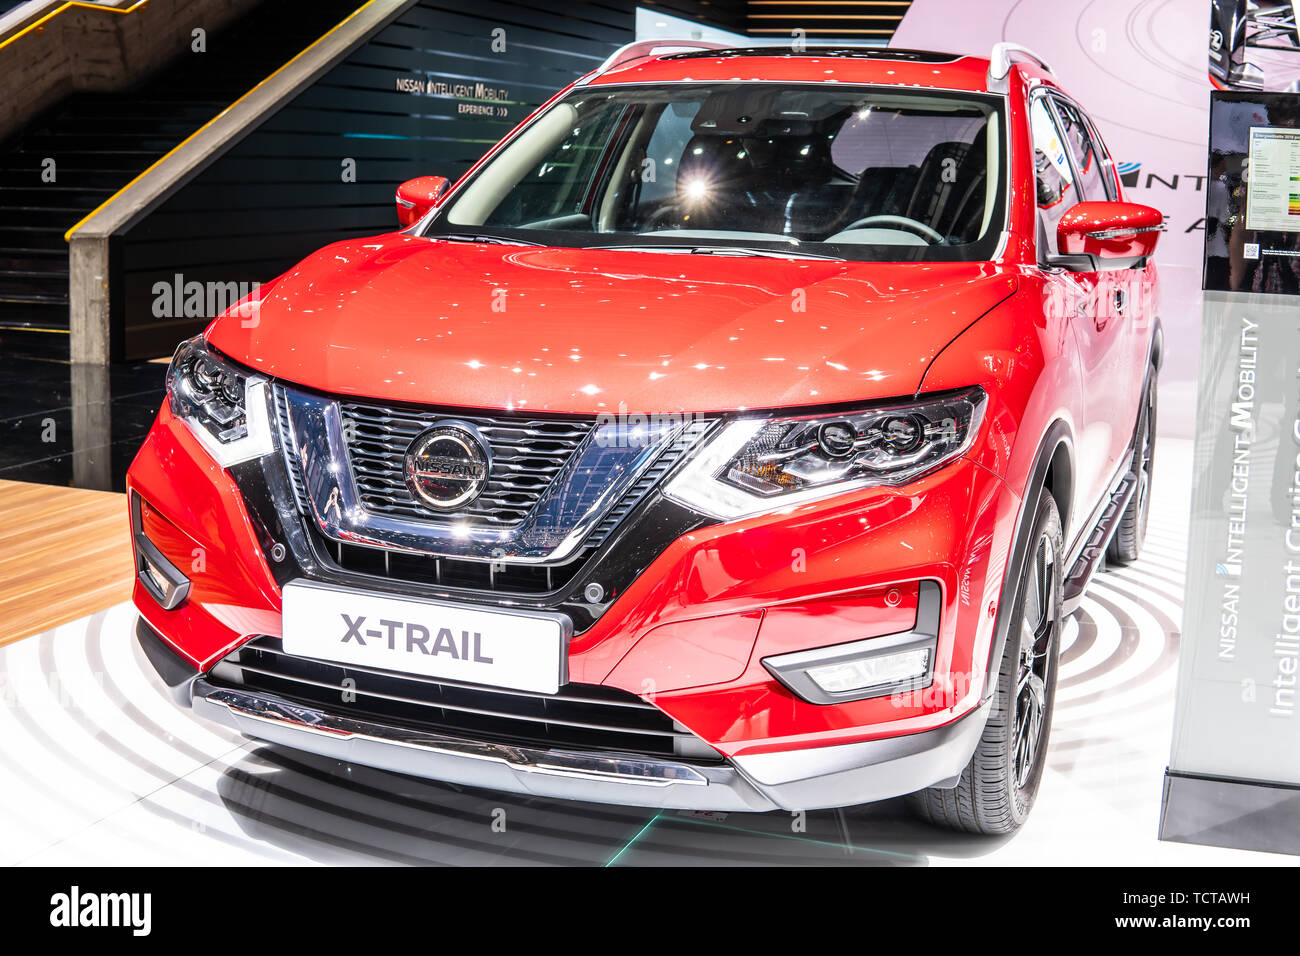 Geneva, Switzerland, March 07, 2019 Nissan X-Trail at Geneva International Motor Show, 3rd gen, compact crossover produced by Japanese Nissan - Stock Image